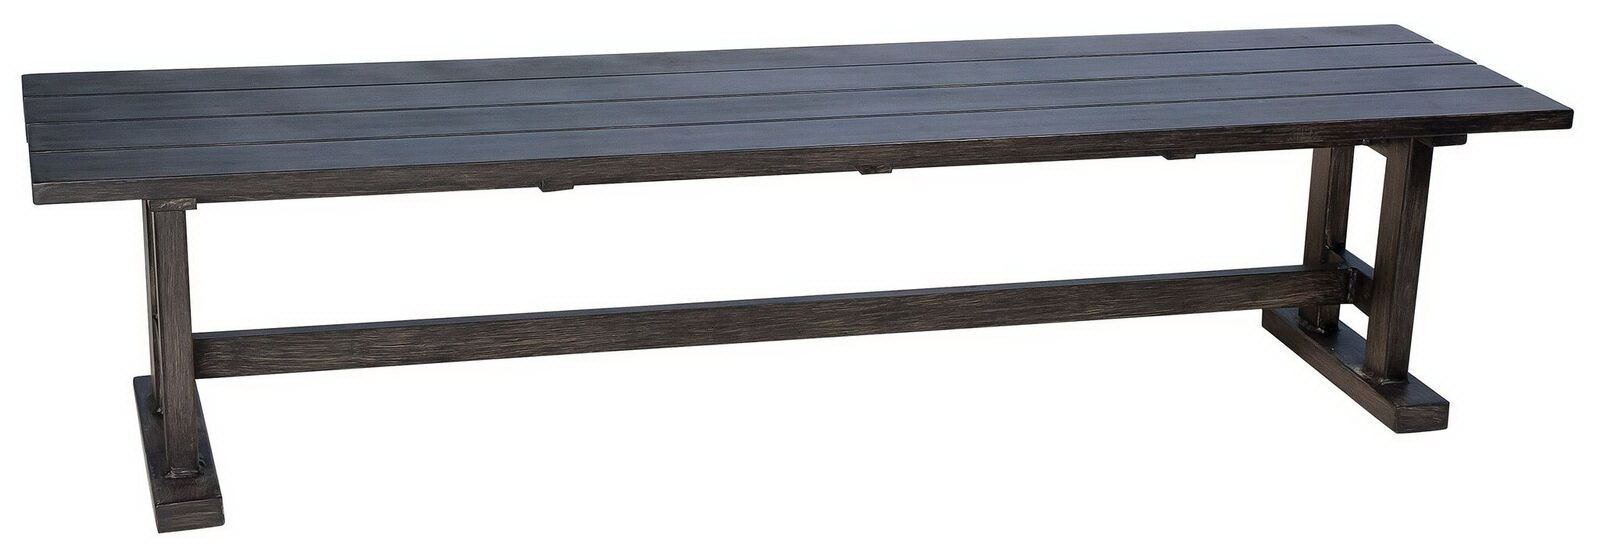 Superieur Outdoor/Patio Bench By Woodard 2Q0414   Patios USA   USA Questions? Call  888.643.6003